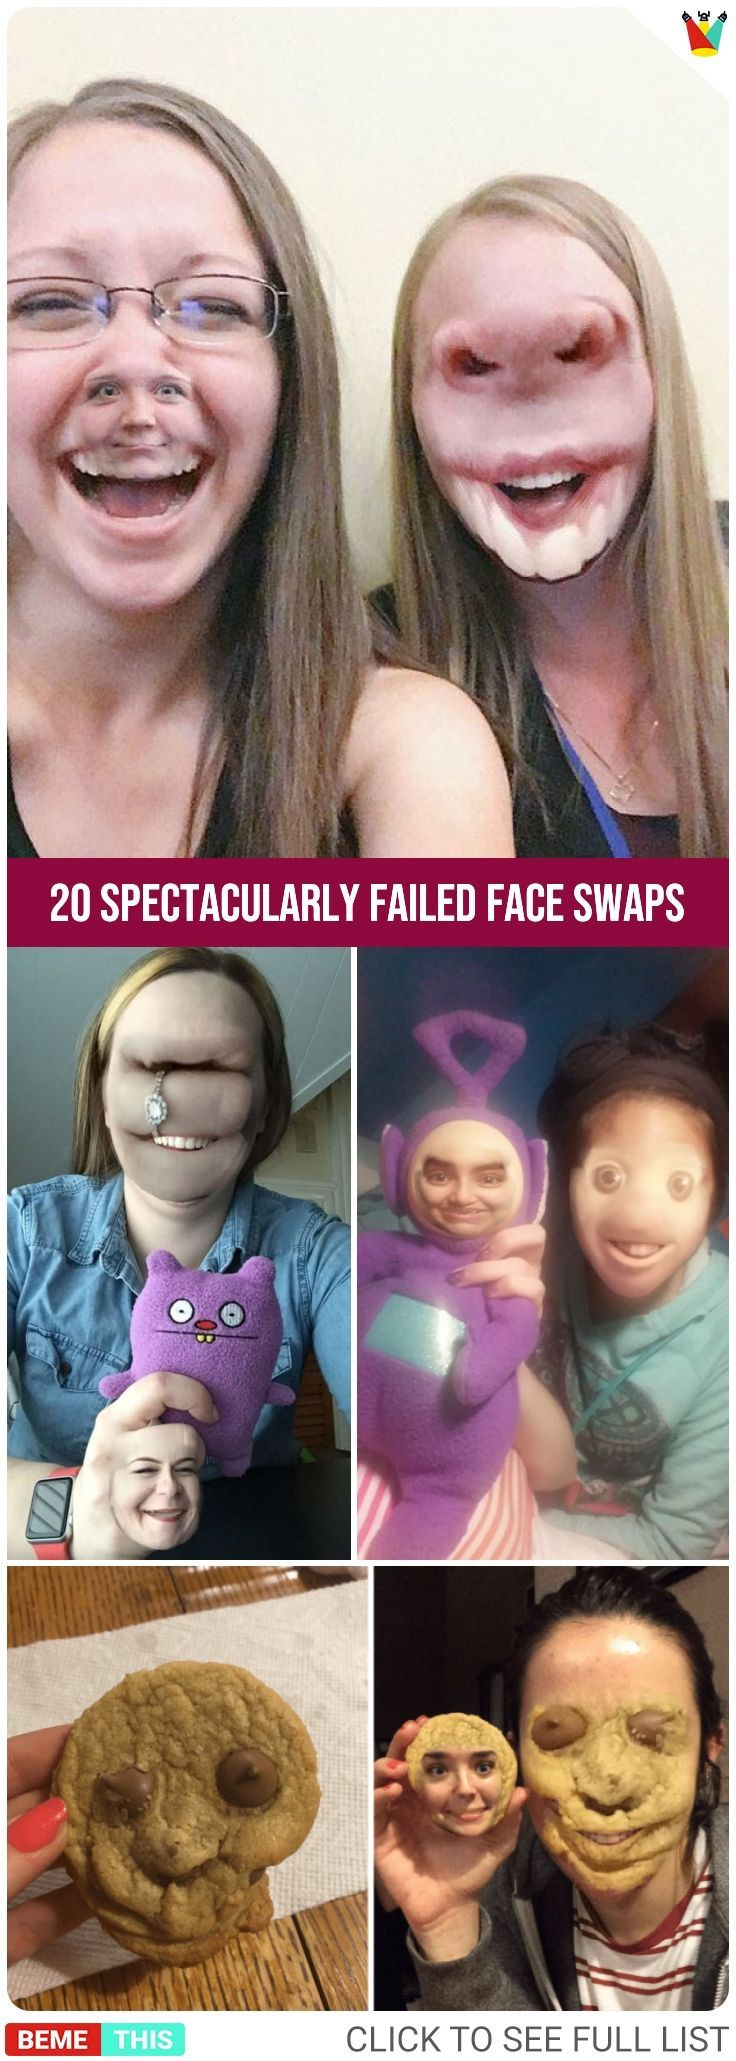 20 Face Swaps That Failed Spectacularly